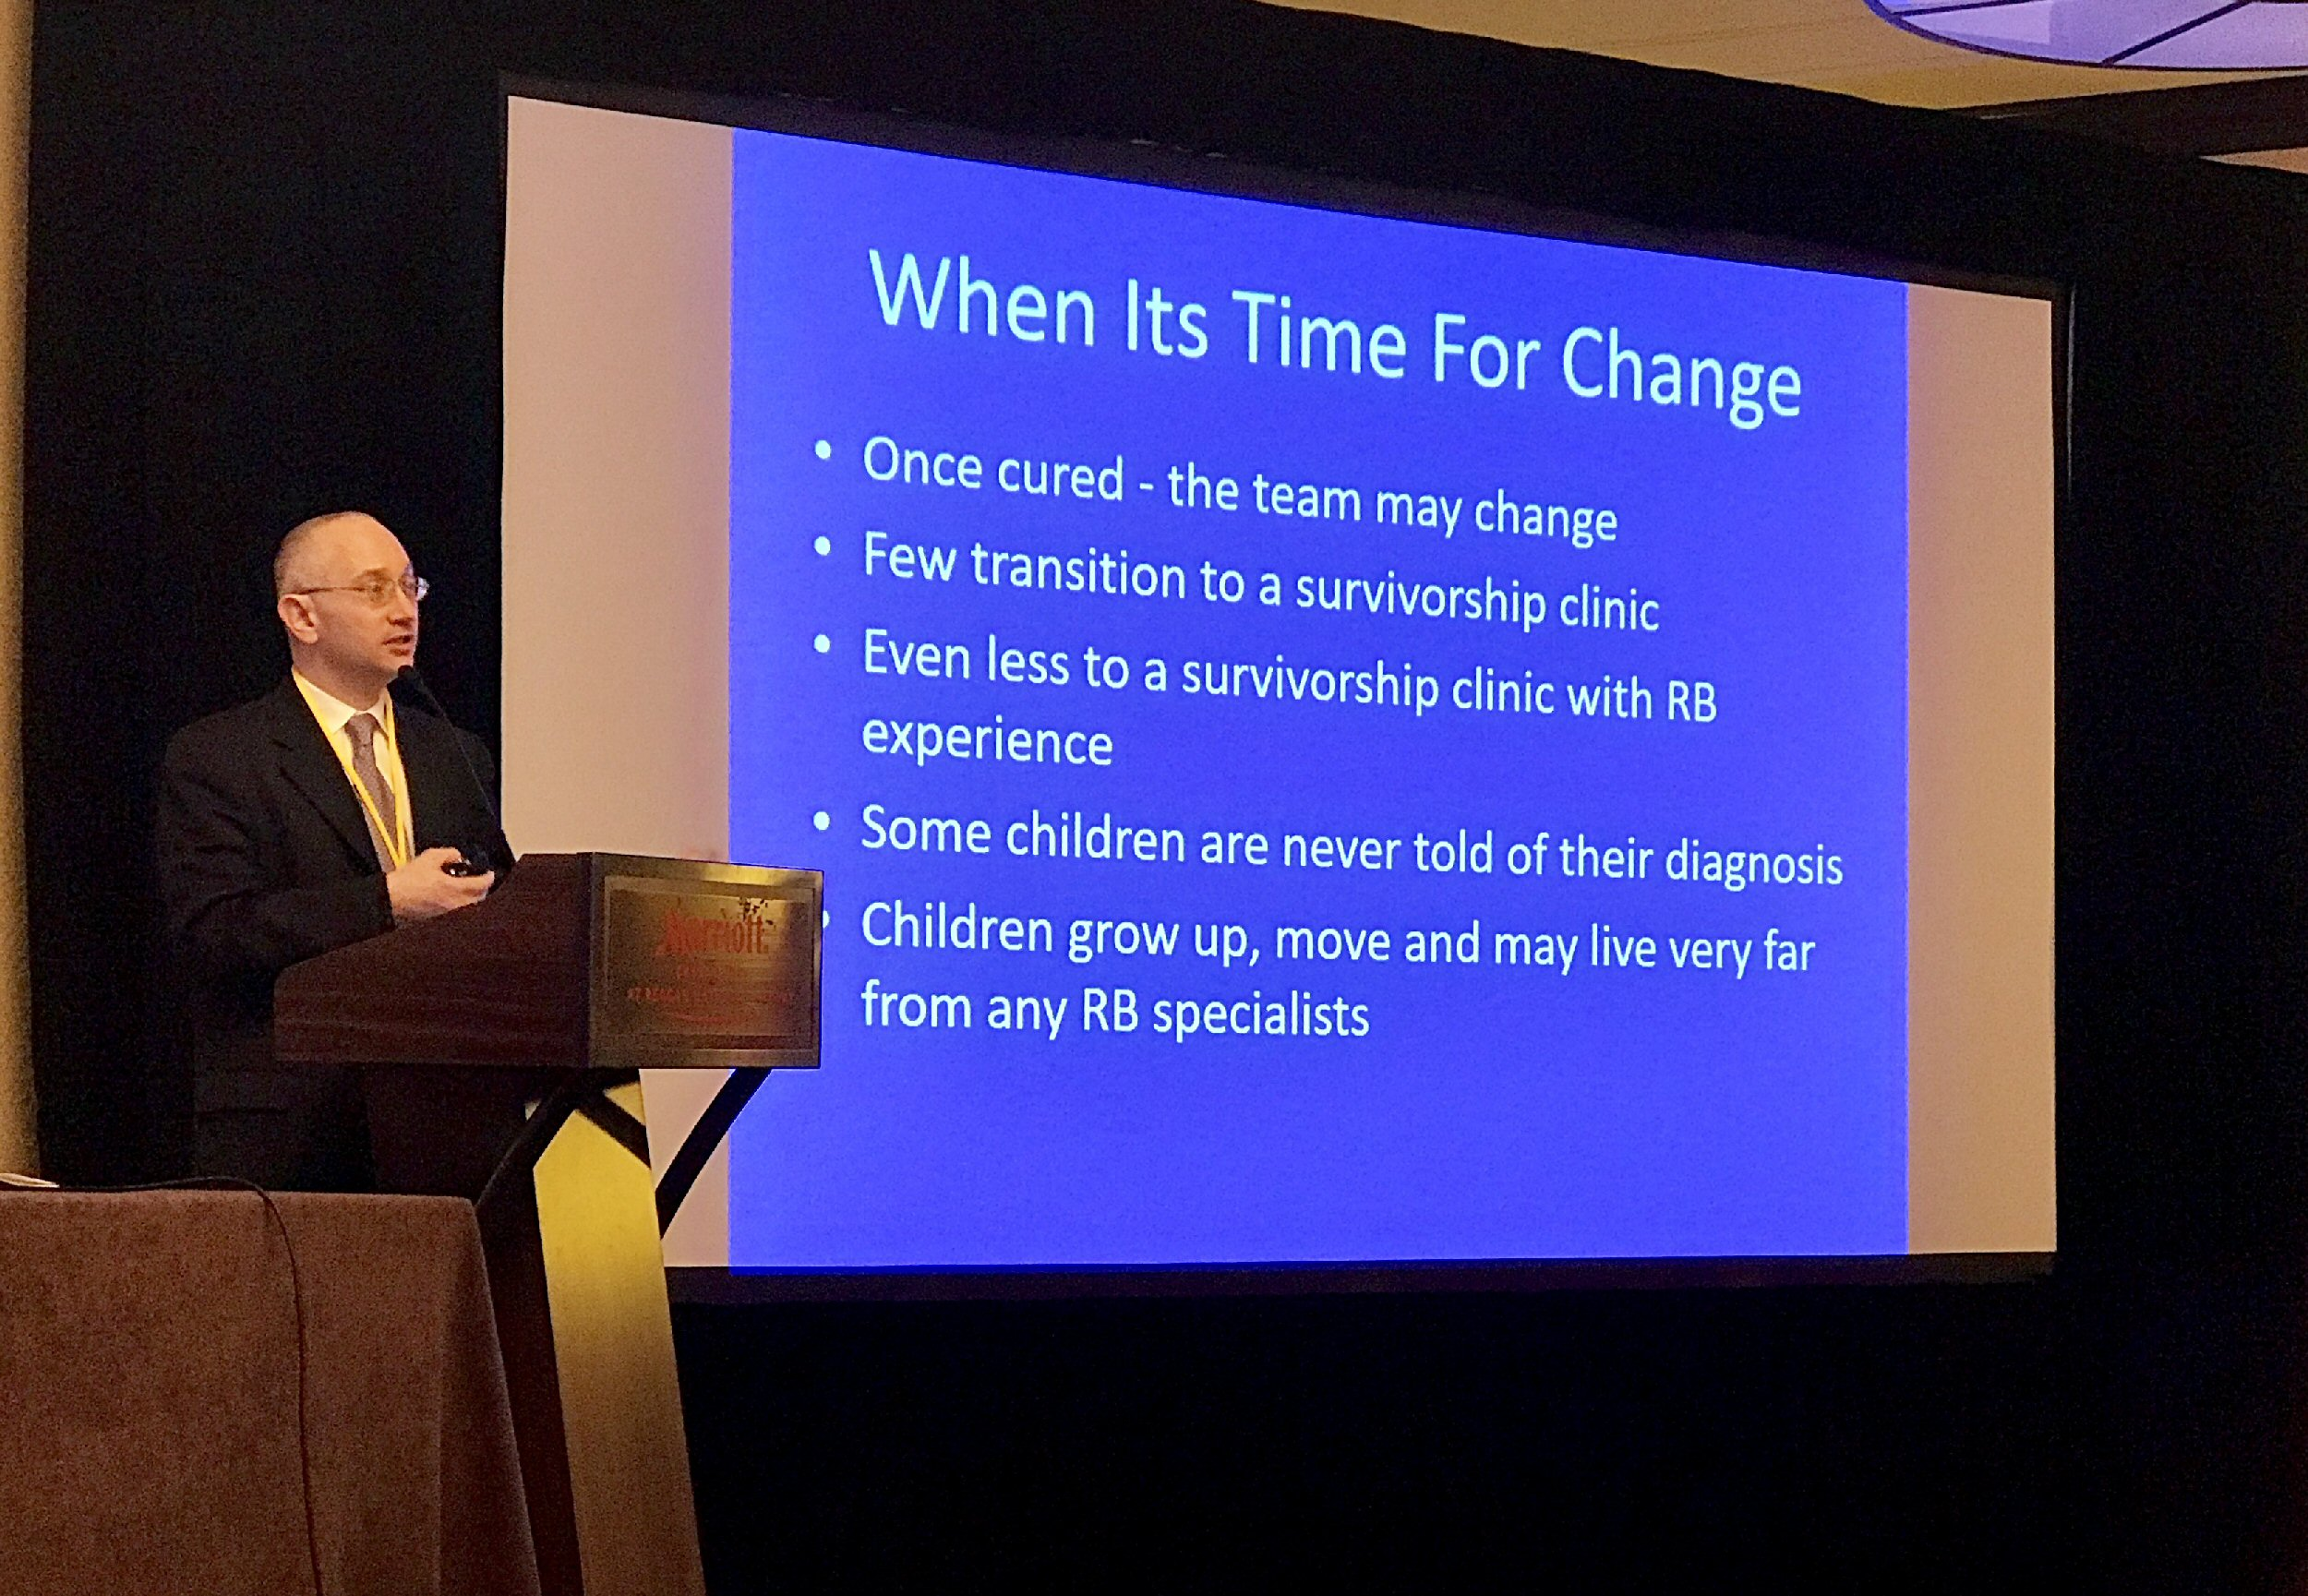 "Dan Gombos presents on the challenges of obtaining effective care for the adult with distant history of Rb. The slide behind him is titled ""When It's Time For Change"" and reads: Once cured – the team may change; Few transition to a survivorship clinic; Even less to a survivorship clinic with Rb experience; Some children are never told of their diagnosis; Children grow up, move, and may live very far from any Rb specialists."